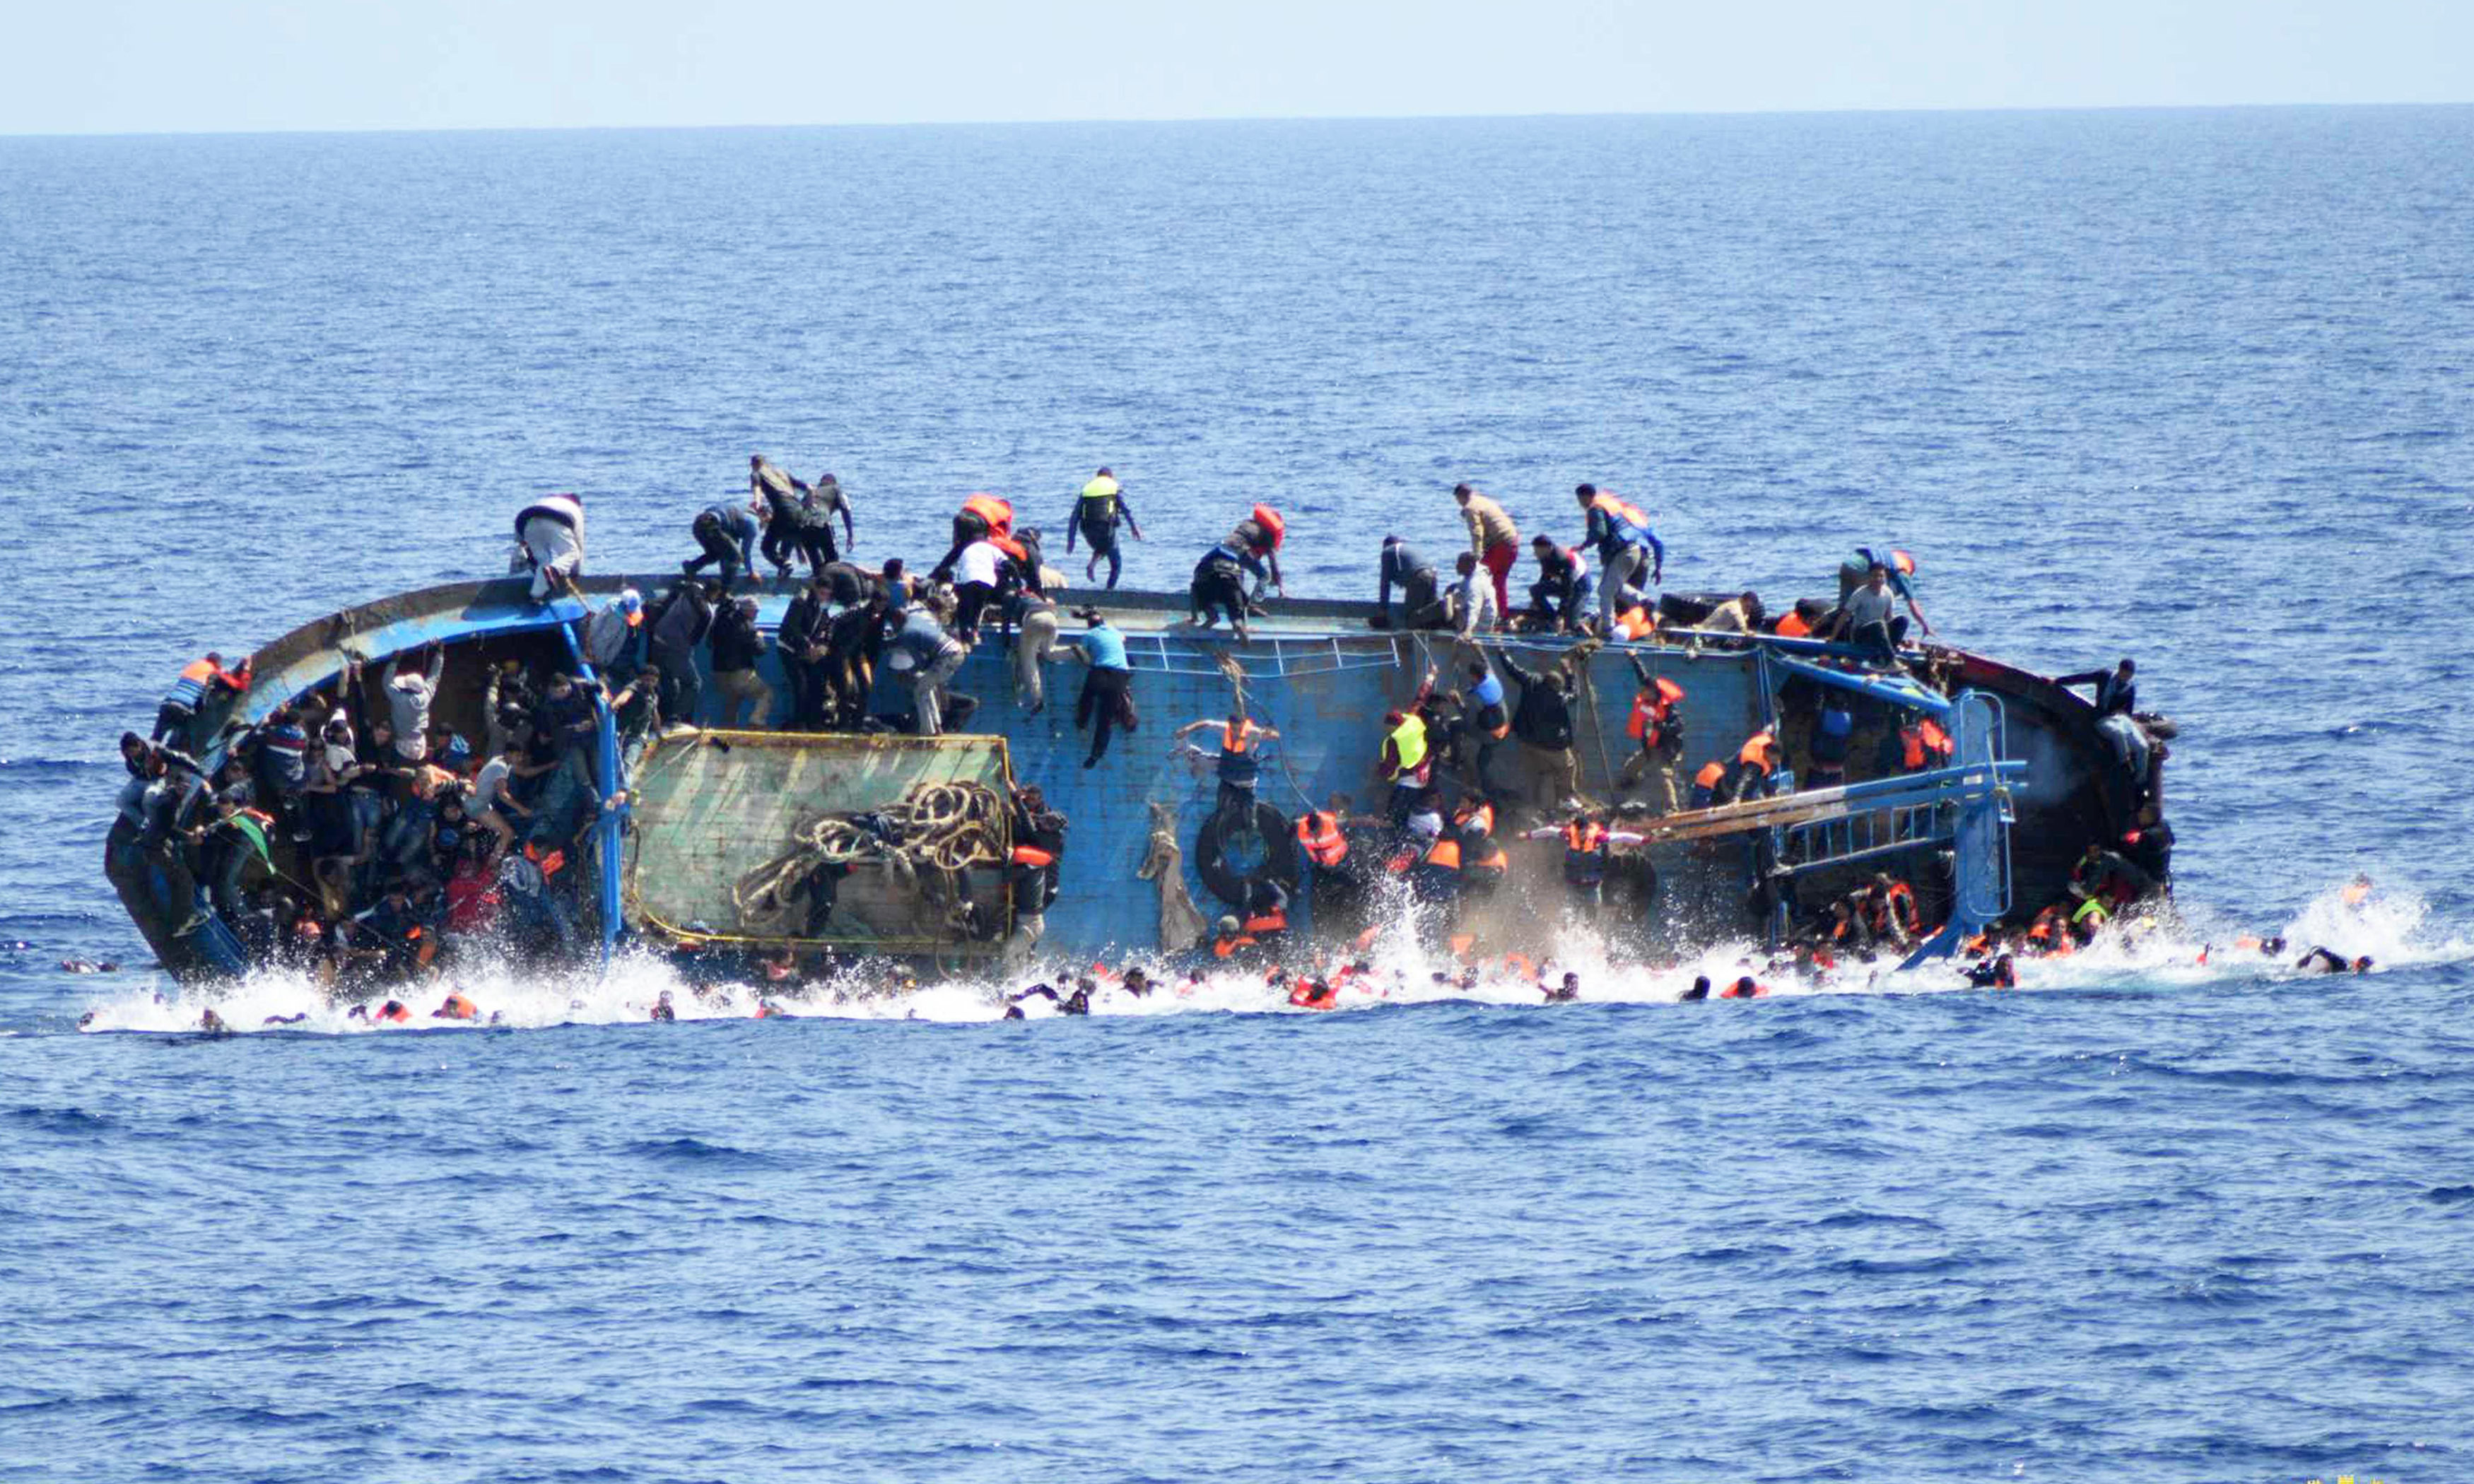 TOPSHOT-ITALY-REFUGEE-IMMIGRATION-SHIPWRECK-RESCUE